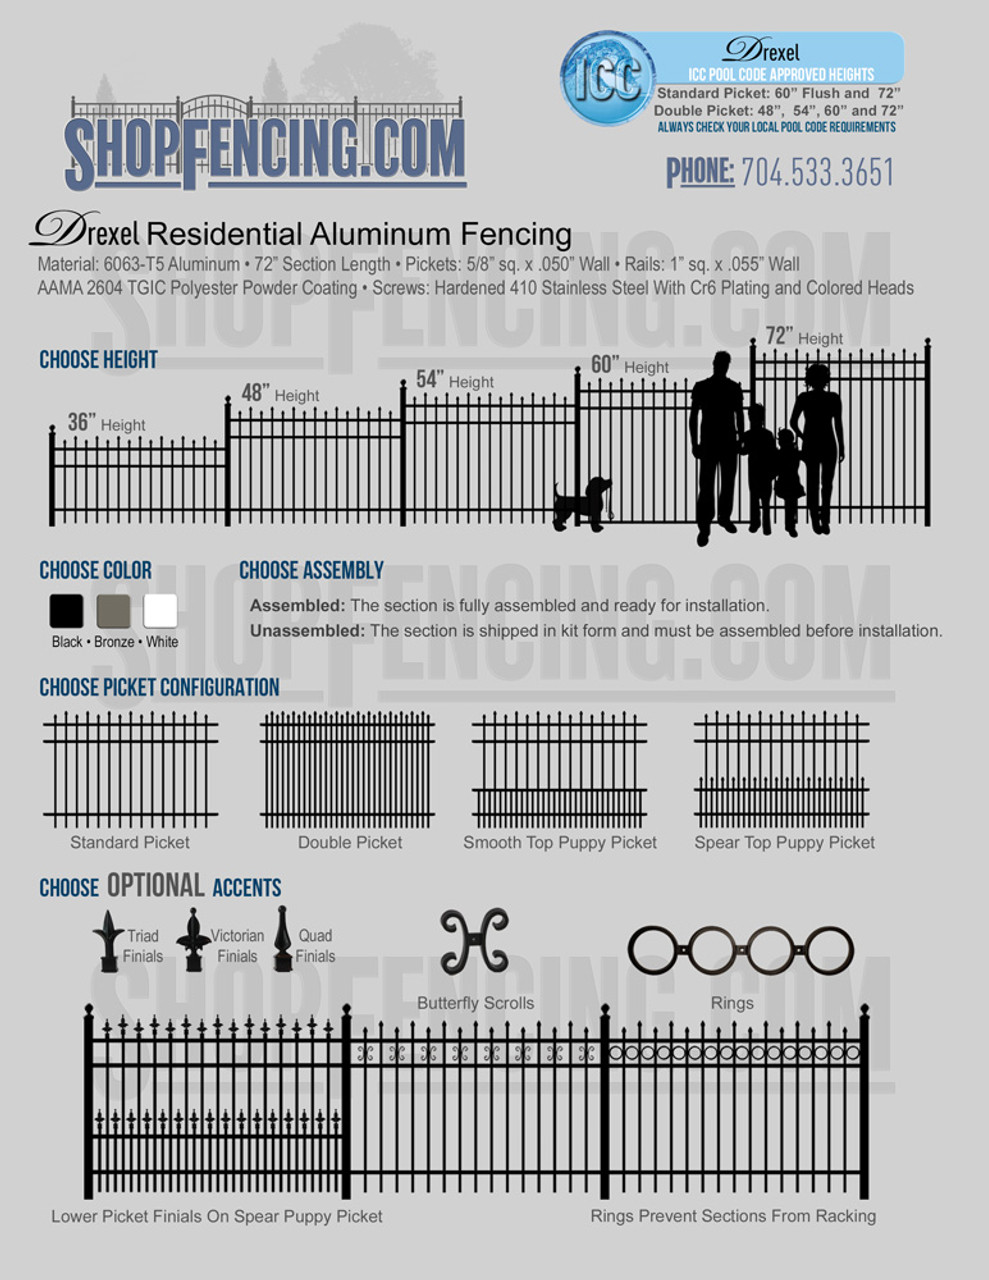 Drexel Residential Aluminum Fencing From ShopFencing.com